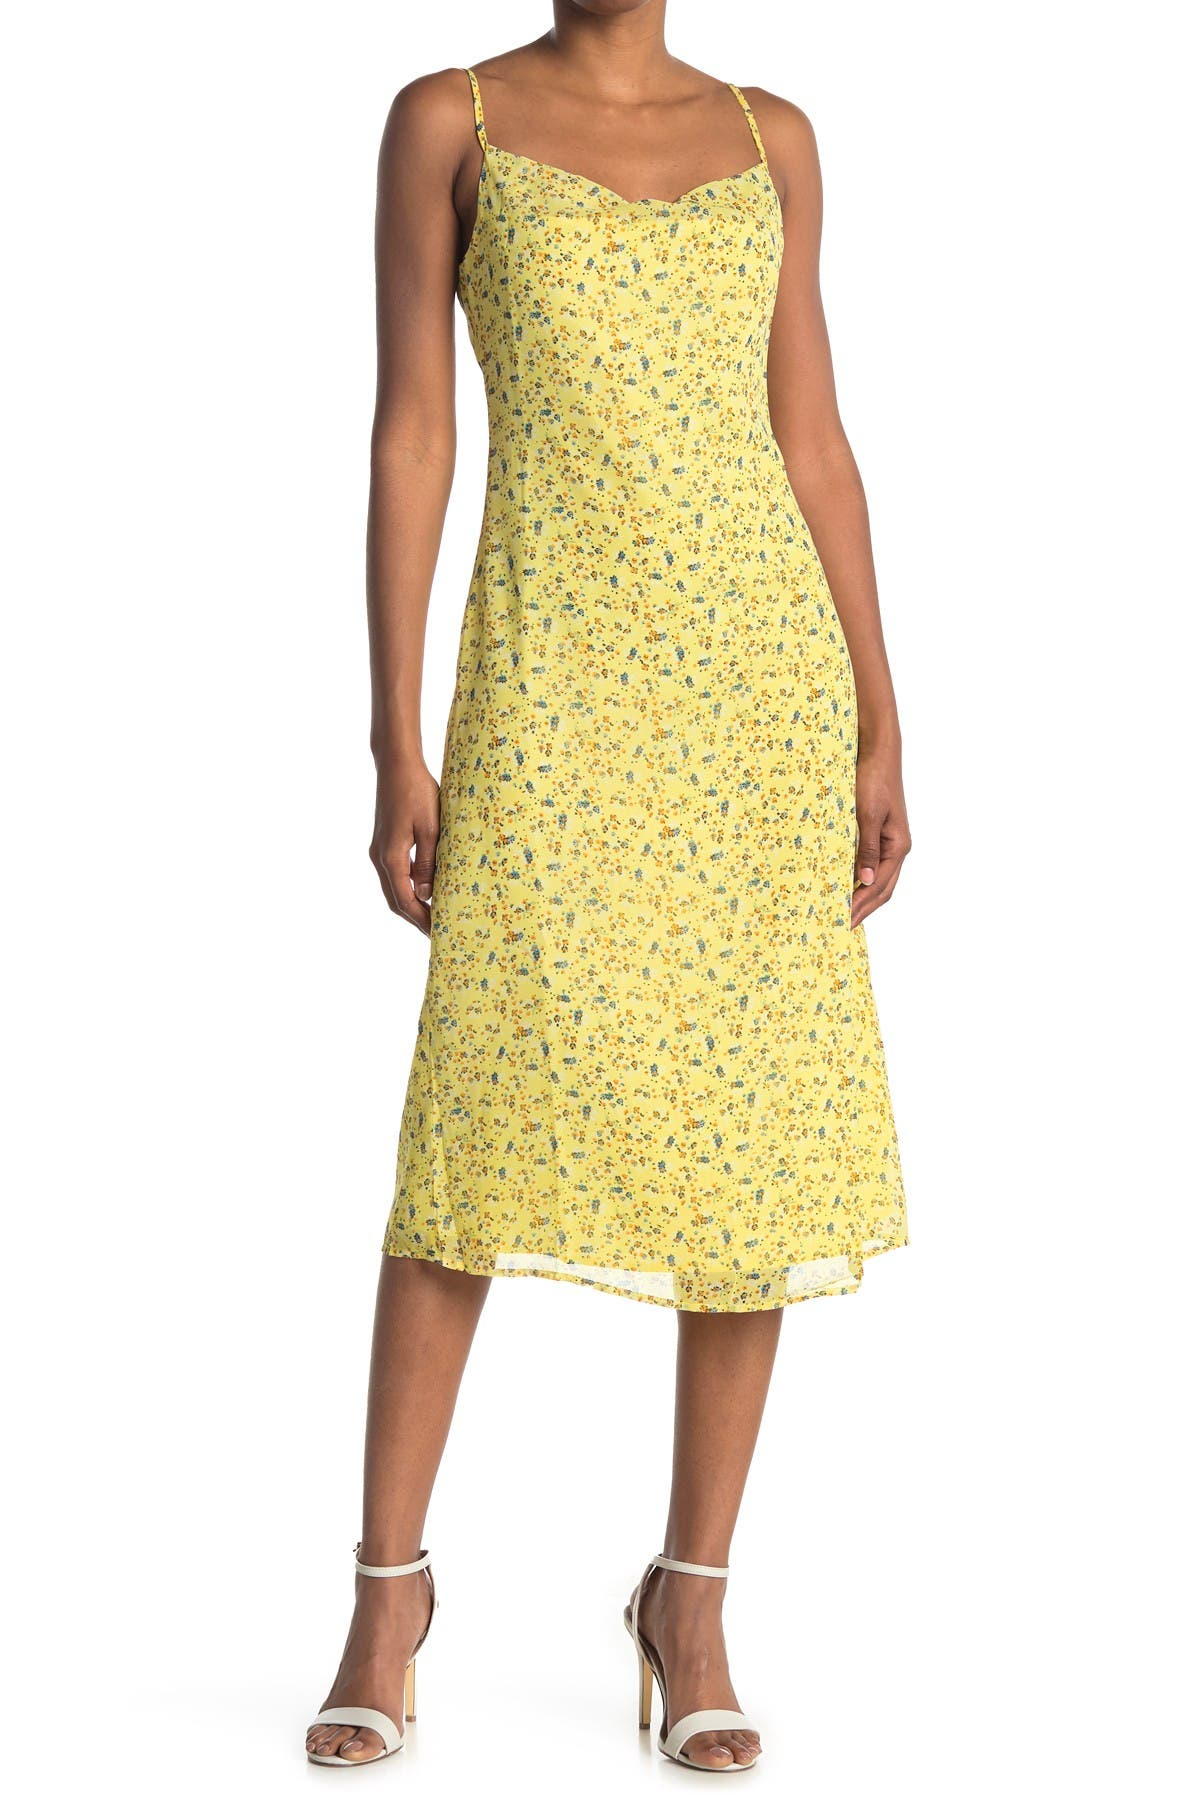 Image of re:named apparel Marley Cowl Neck Cami Midi Dress